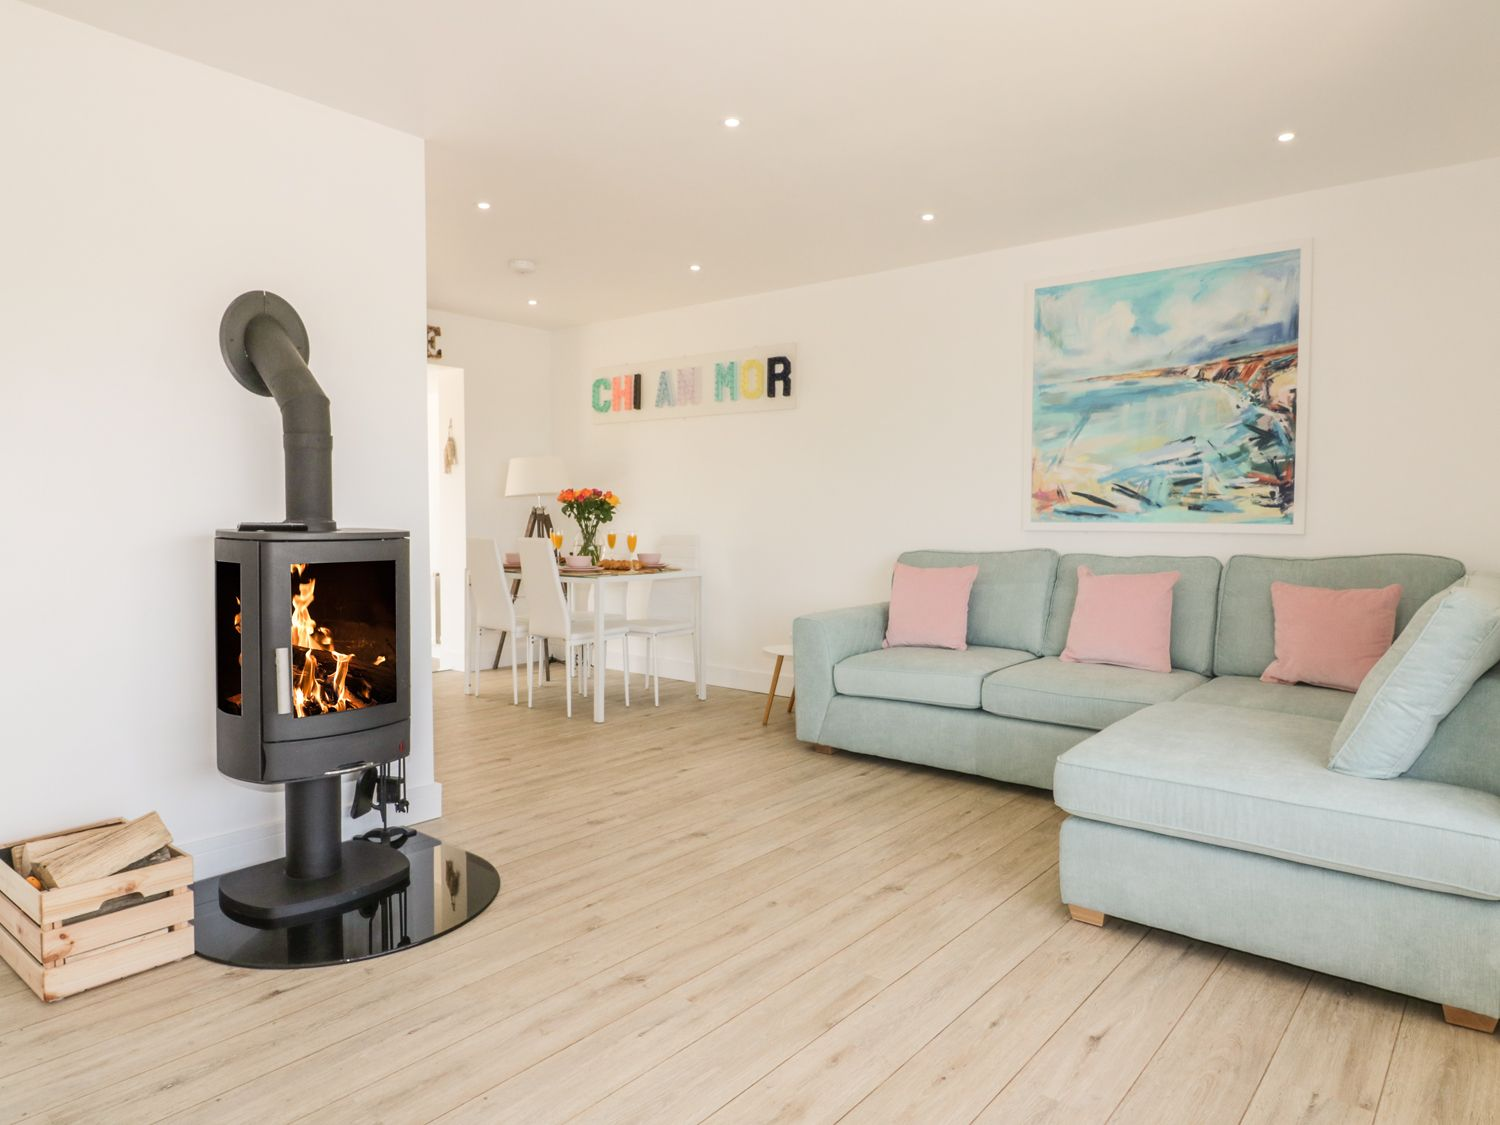 Chi An Mor in Porth - sleeps 4 people